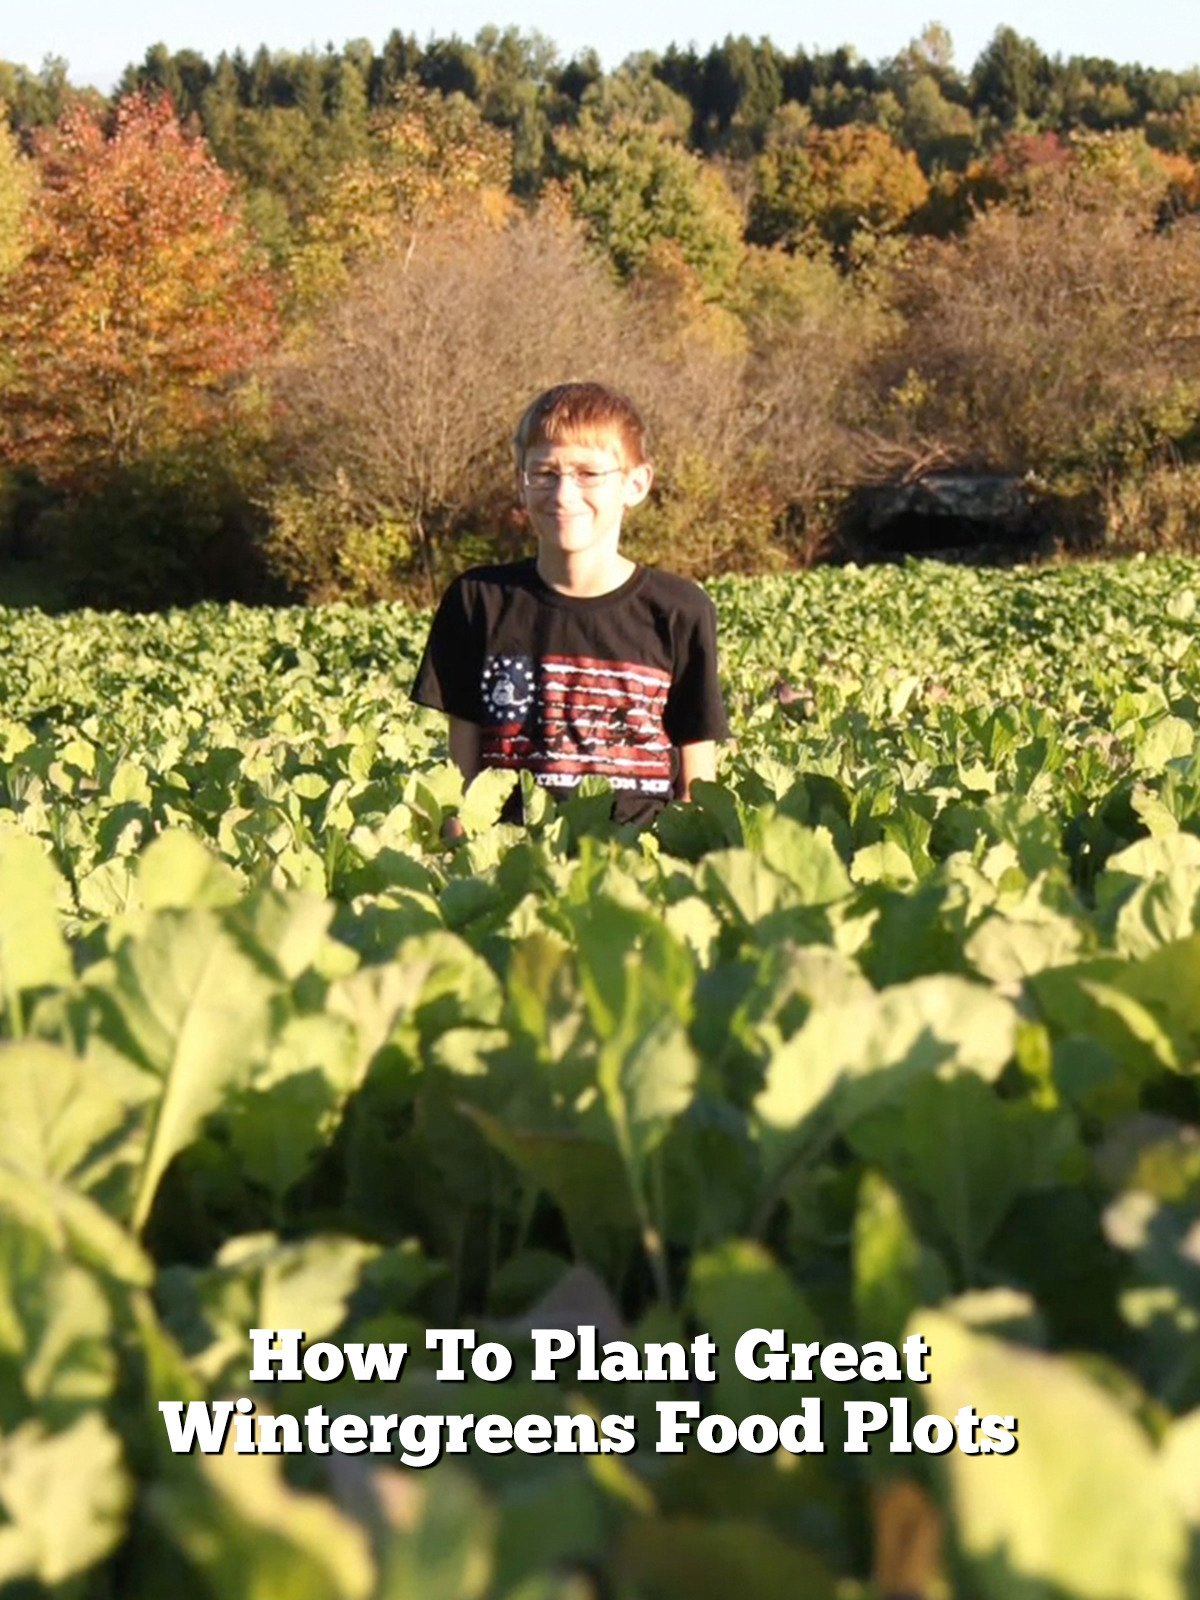 How To Plant Great Wintergreens Food Plots